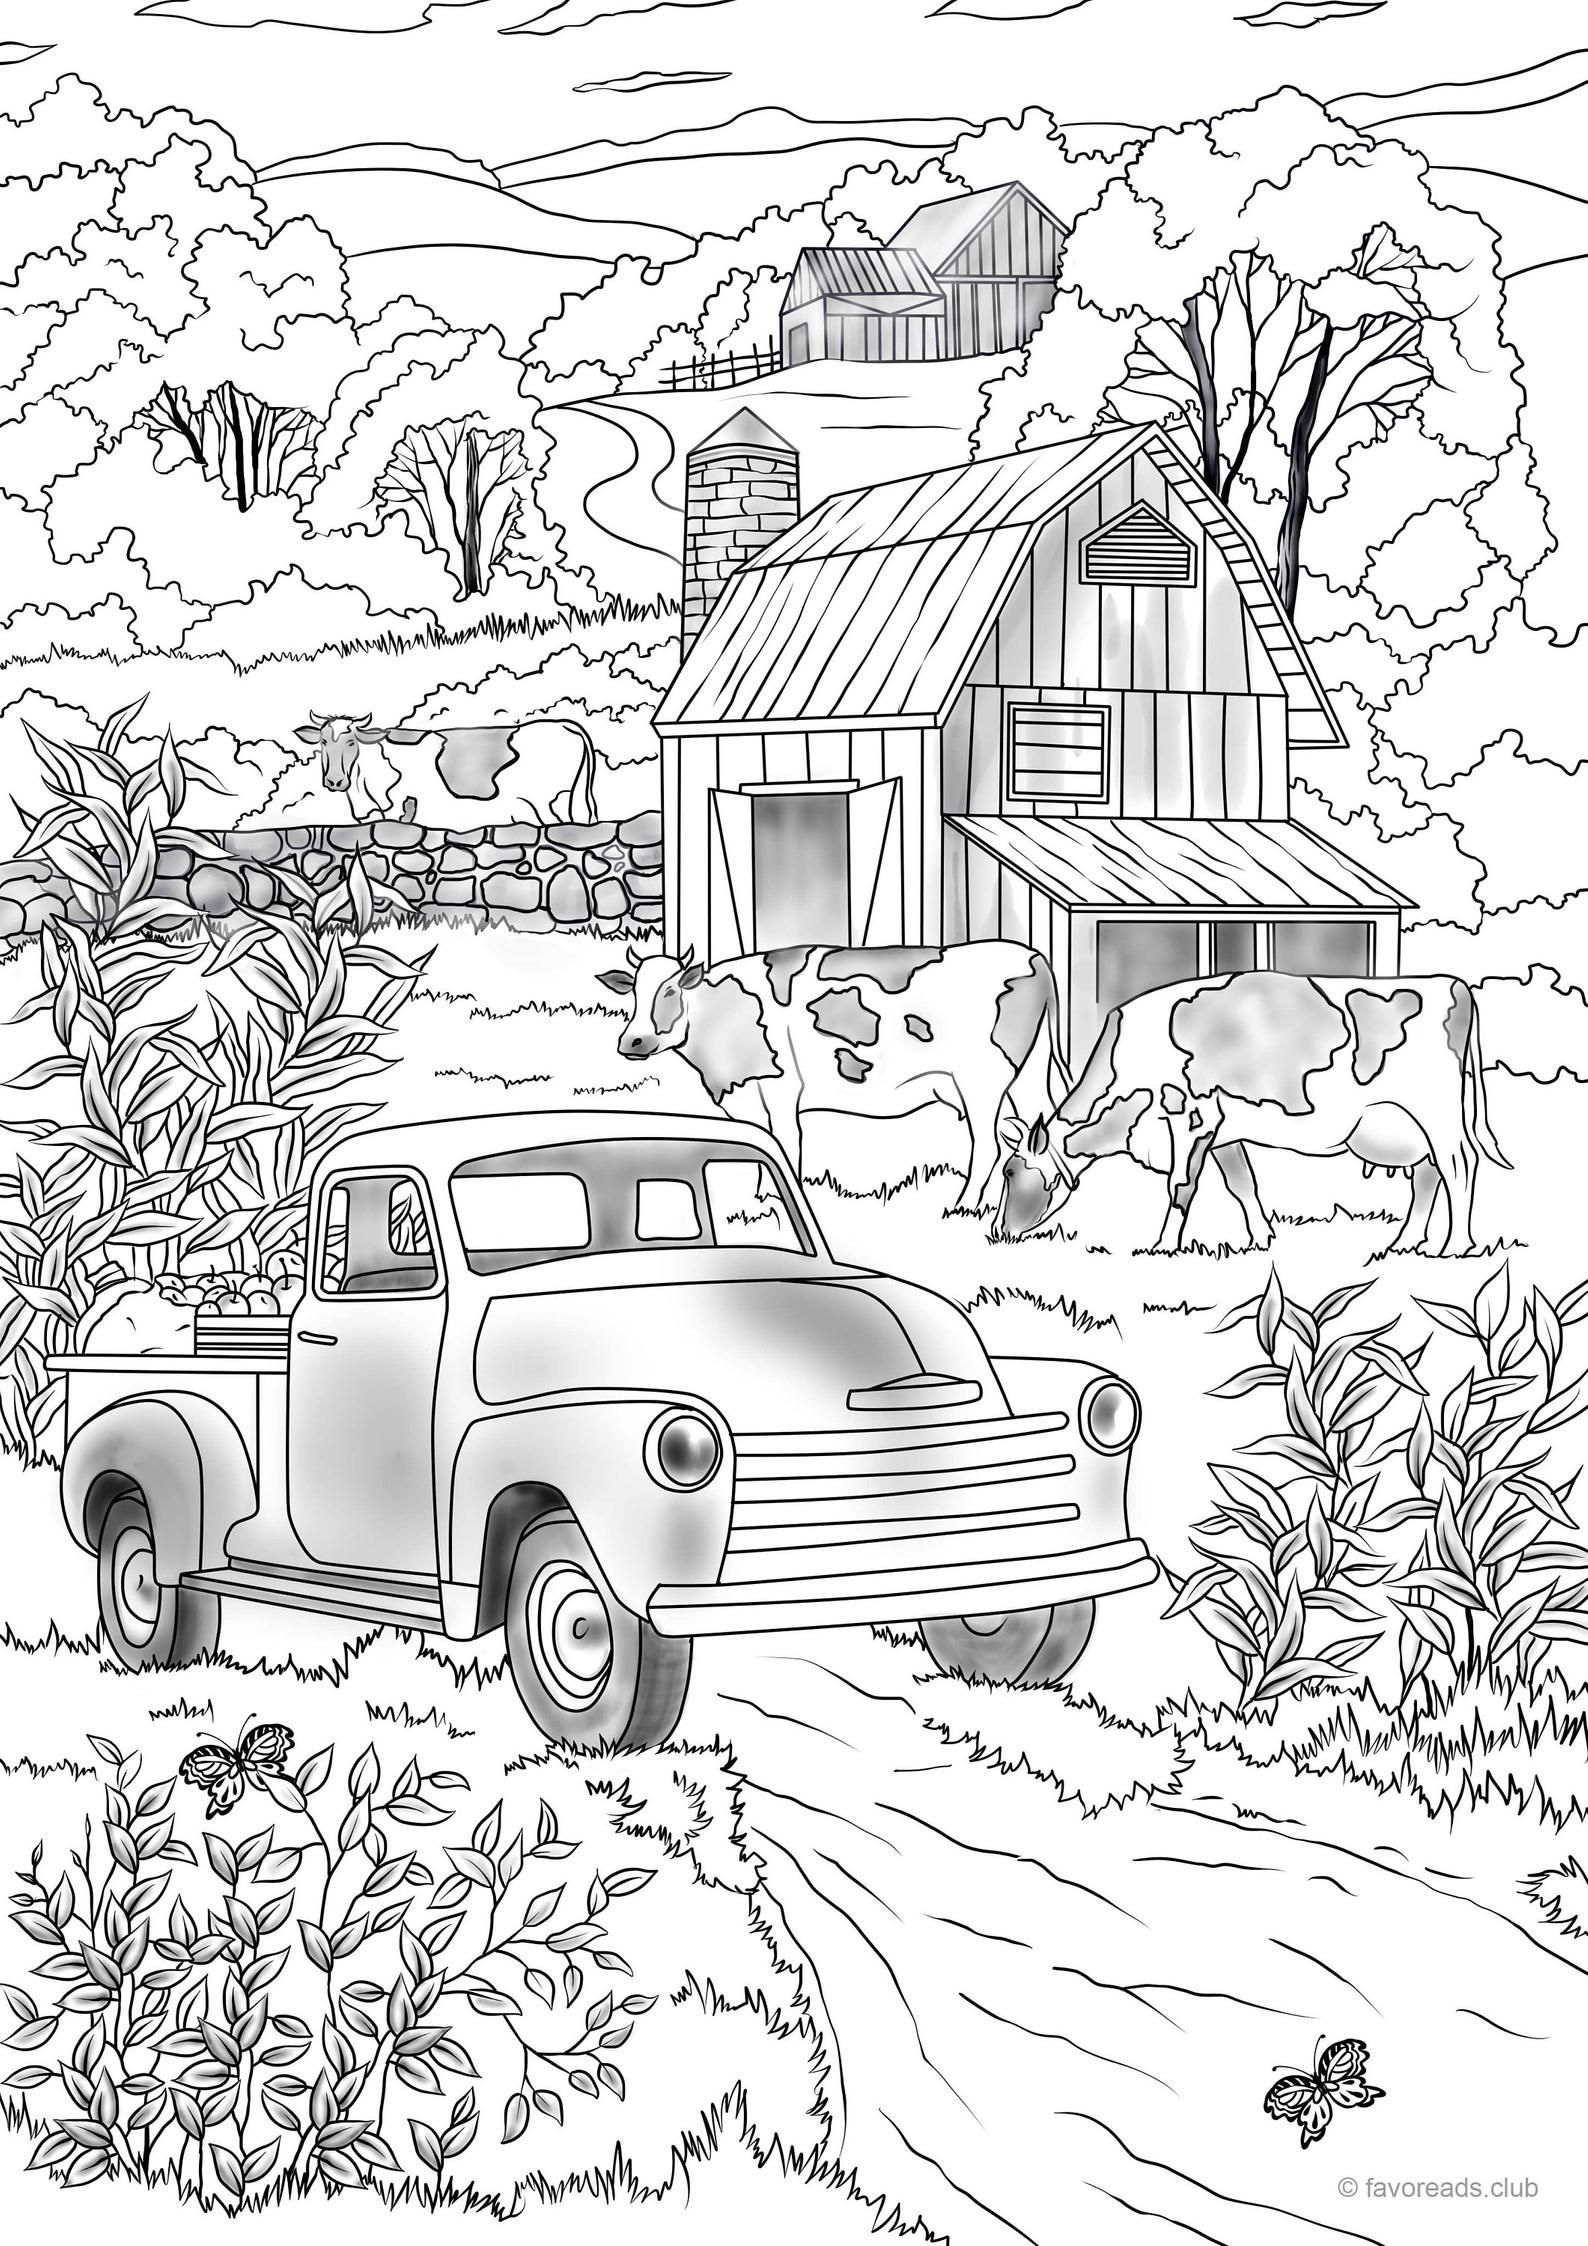 Country Car - Printable Adult Coloring Page from Favoreads ...